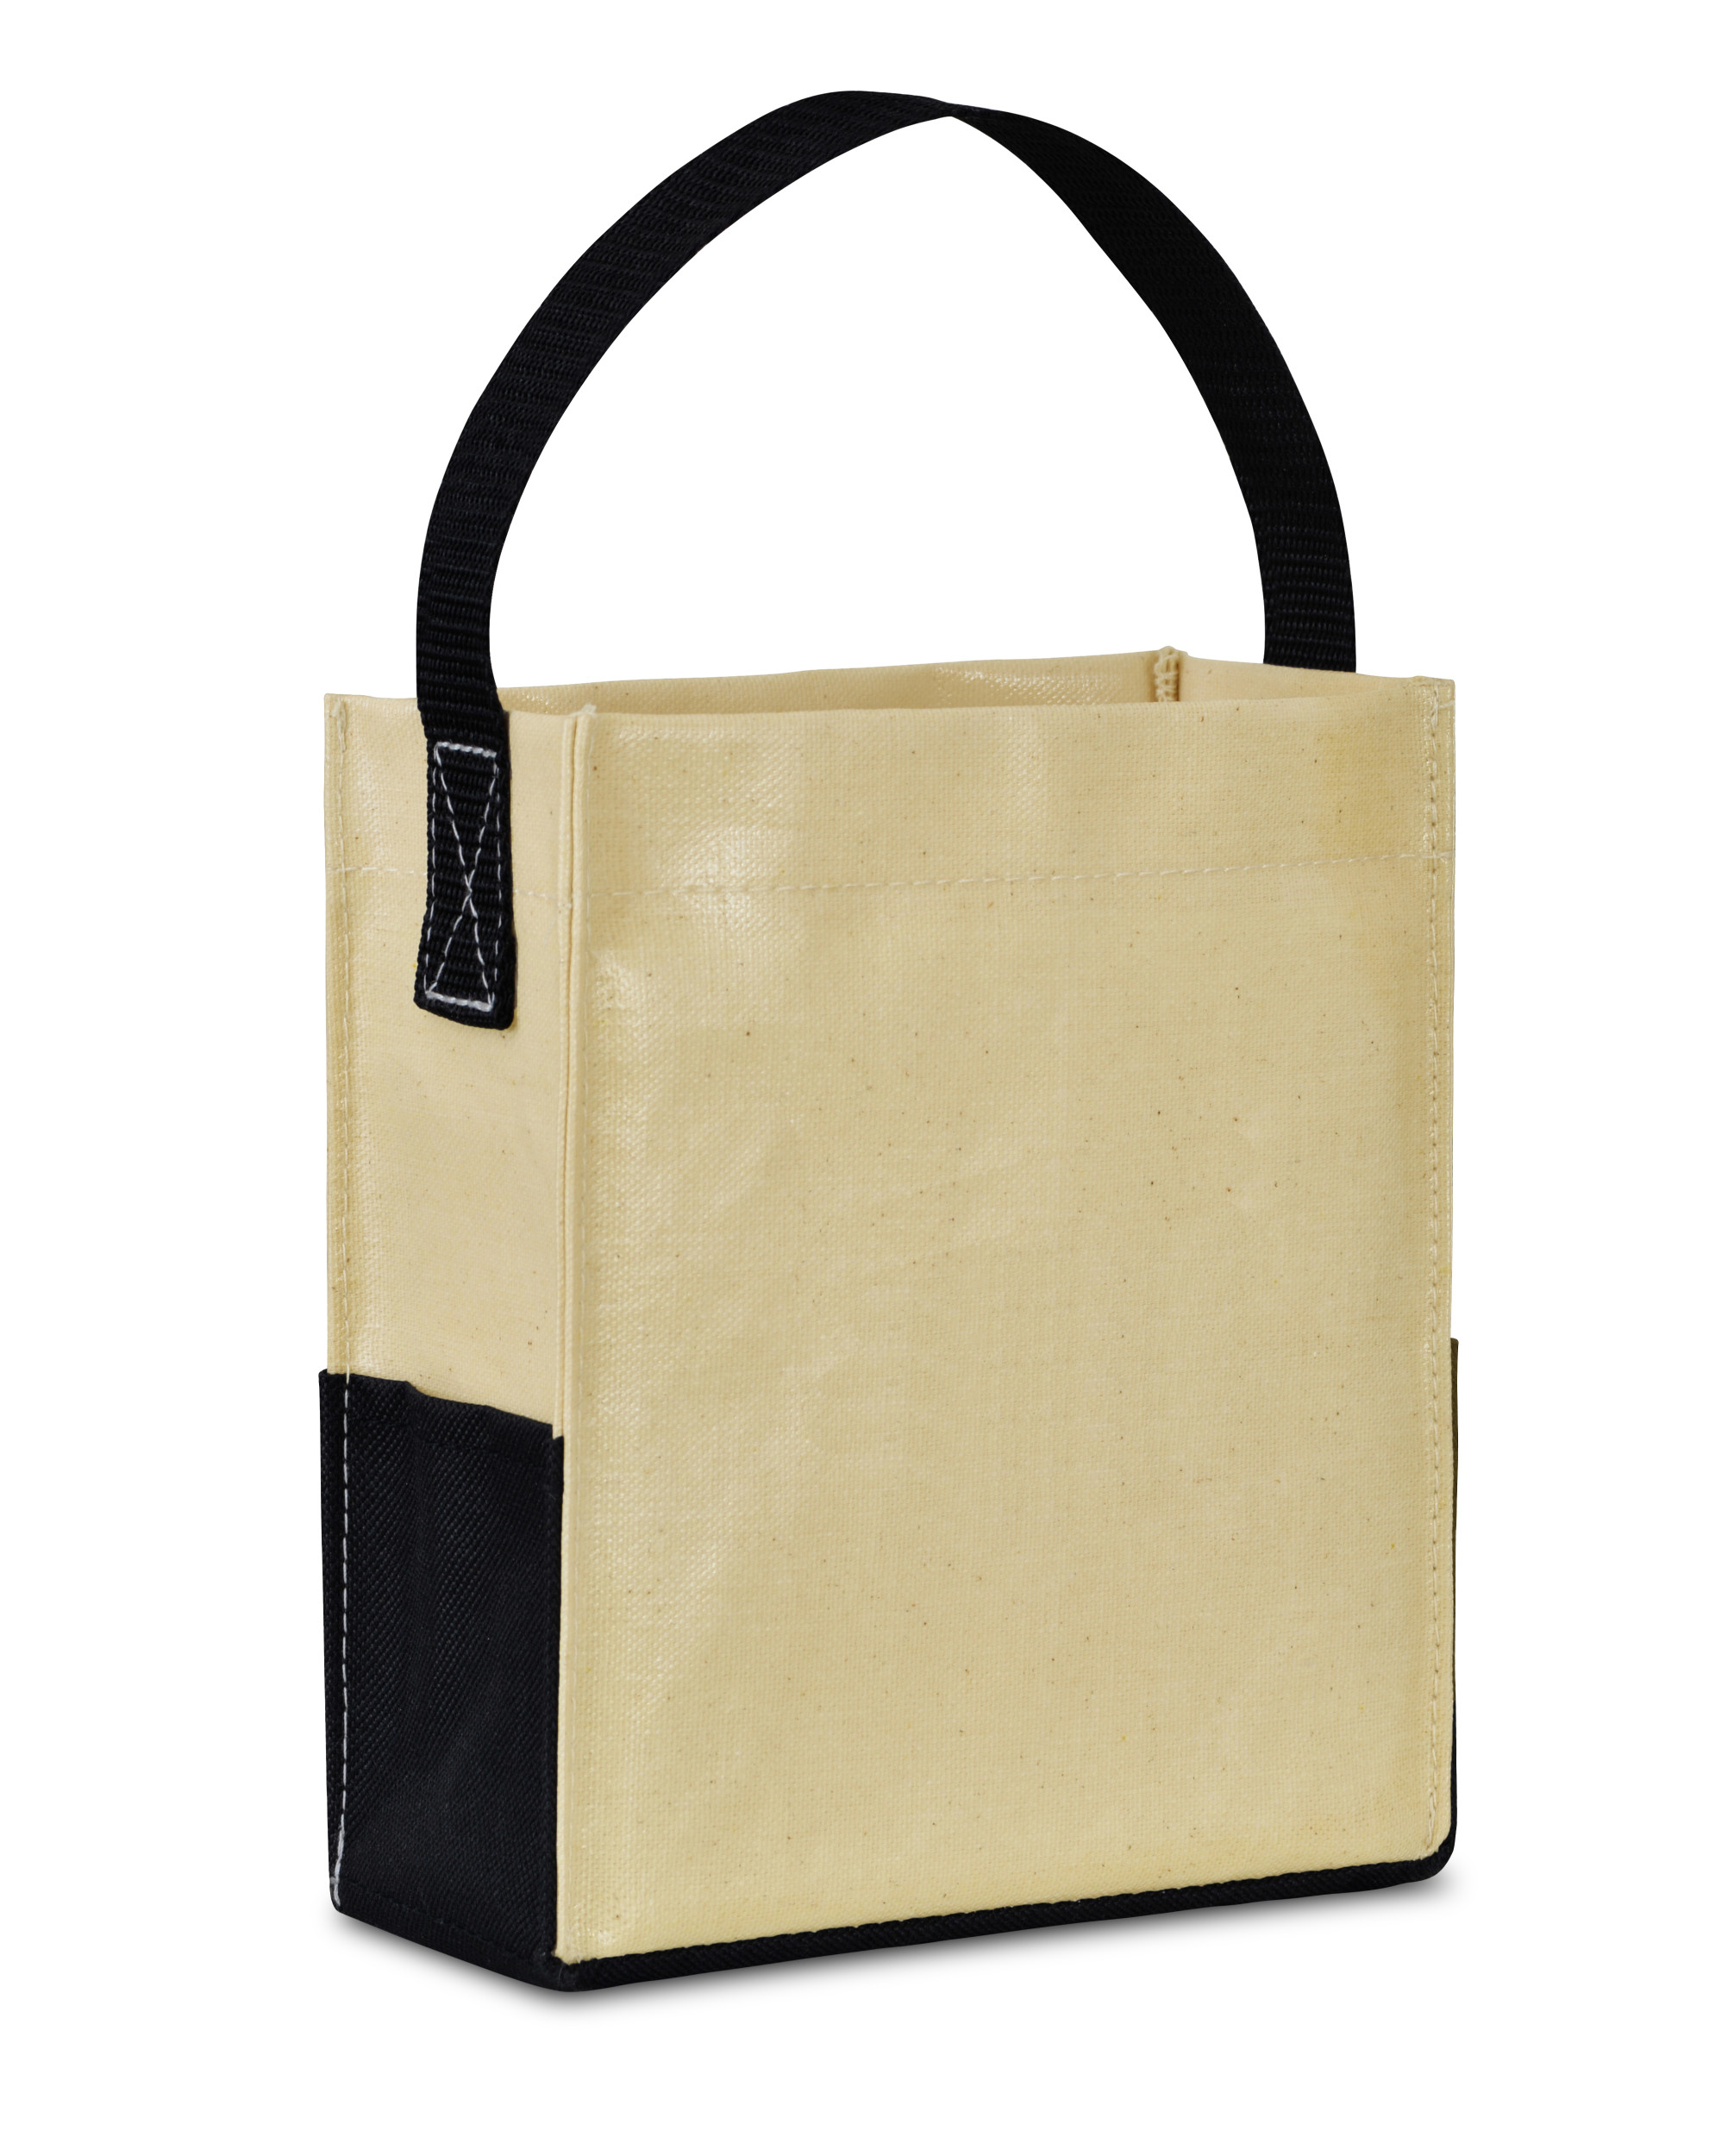 Gemline 100113-101 - Kali Coated Cotton Mini Tote